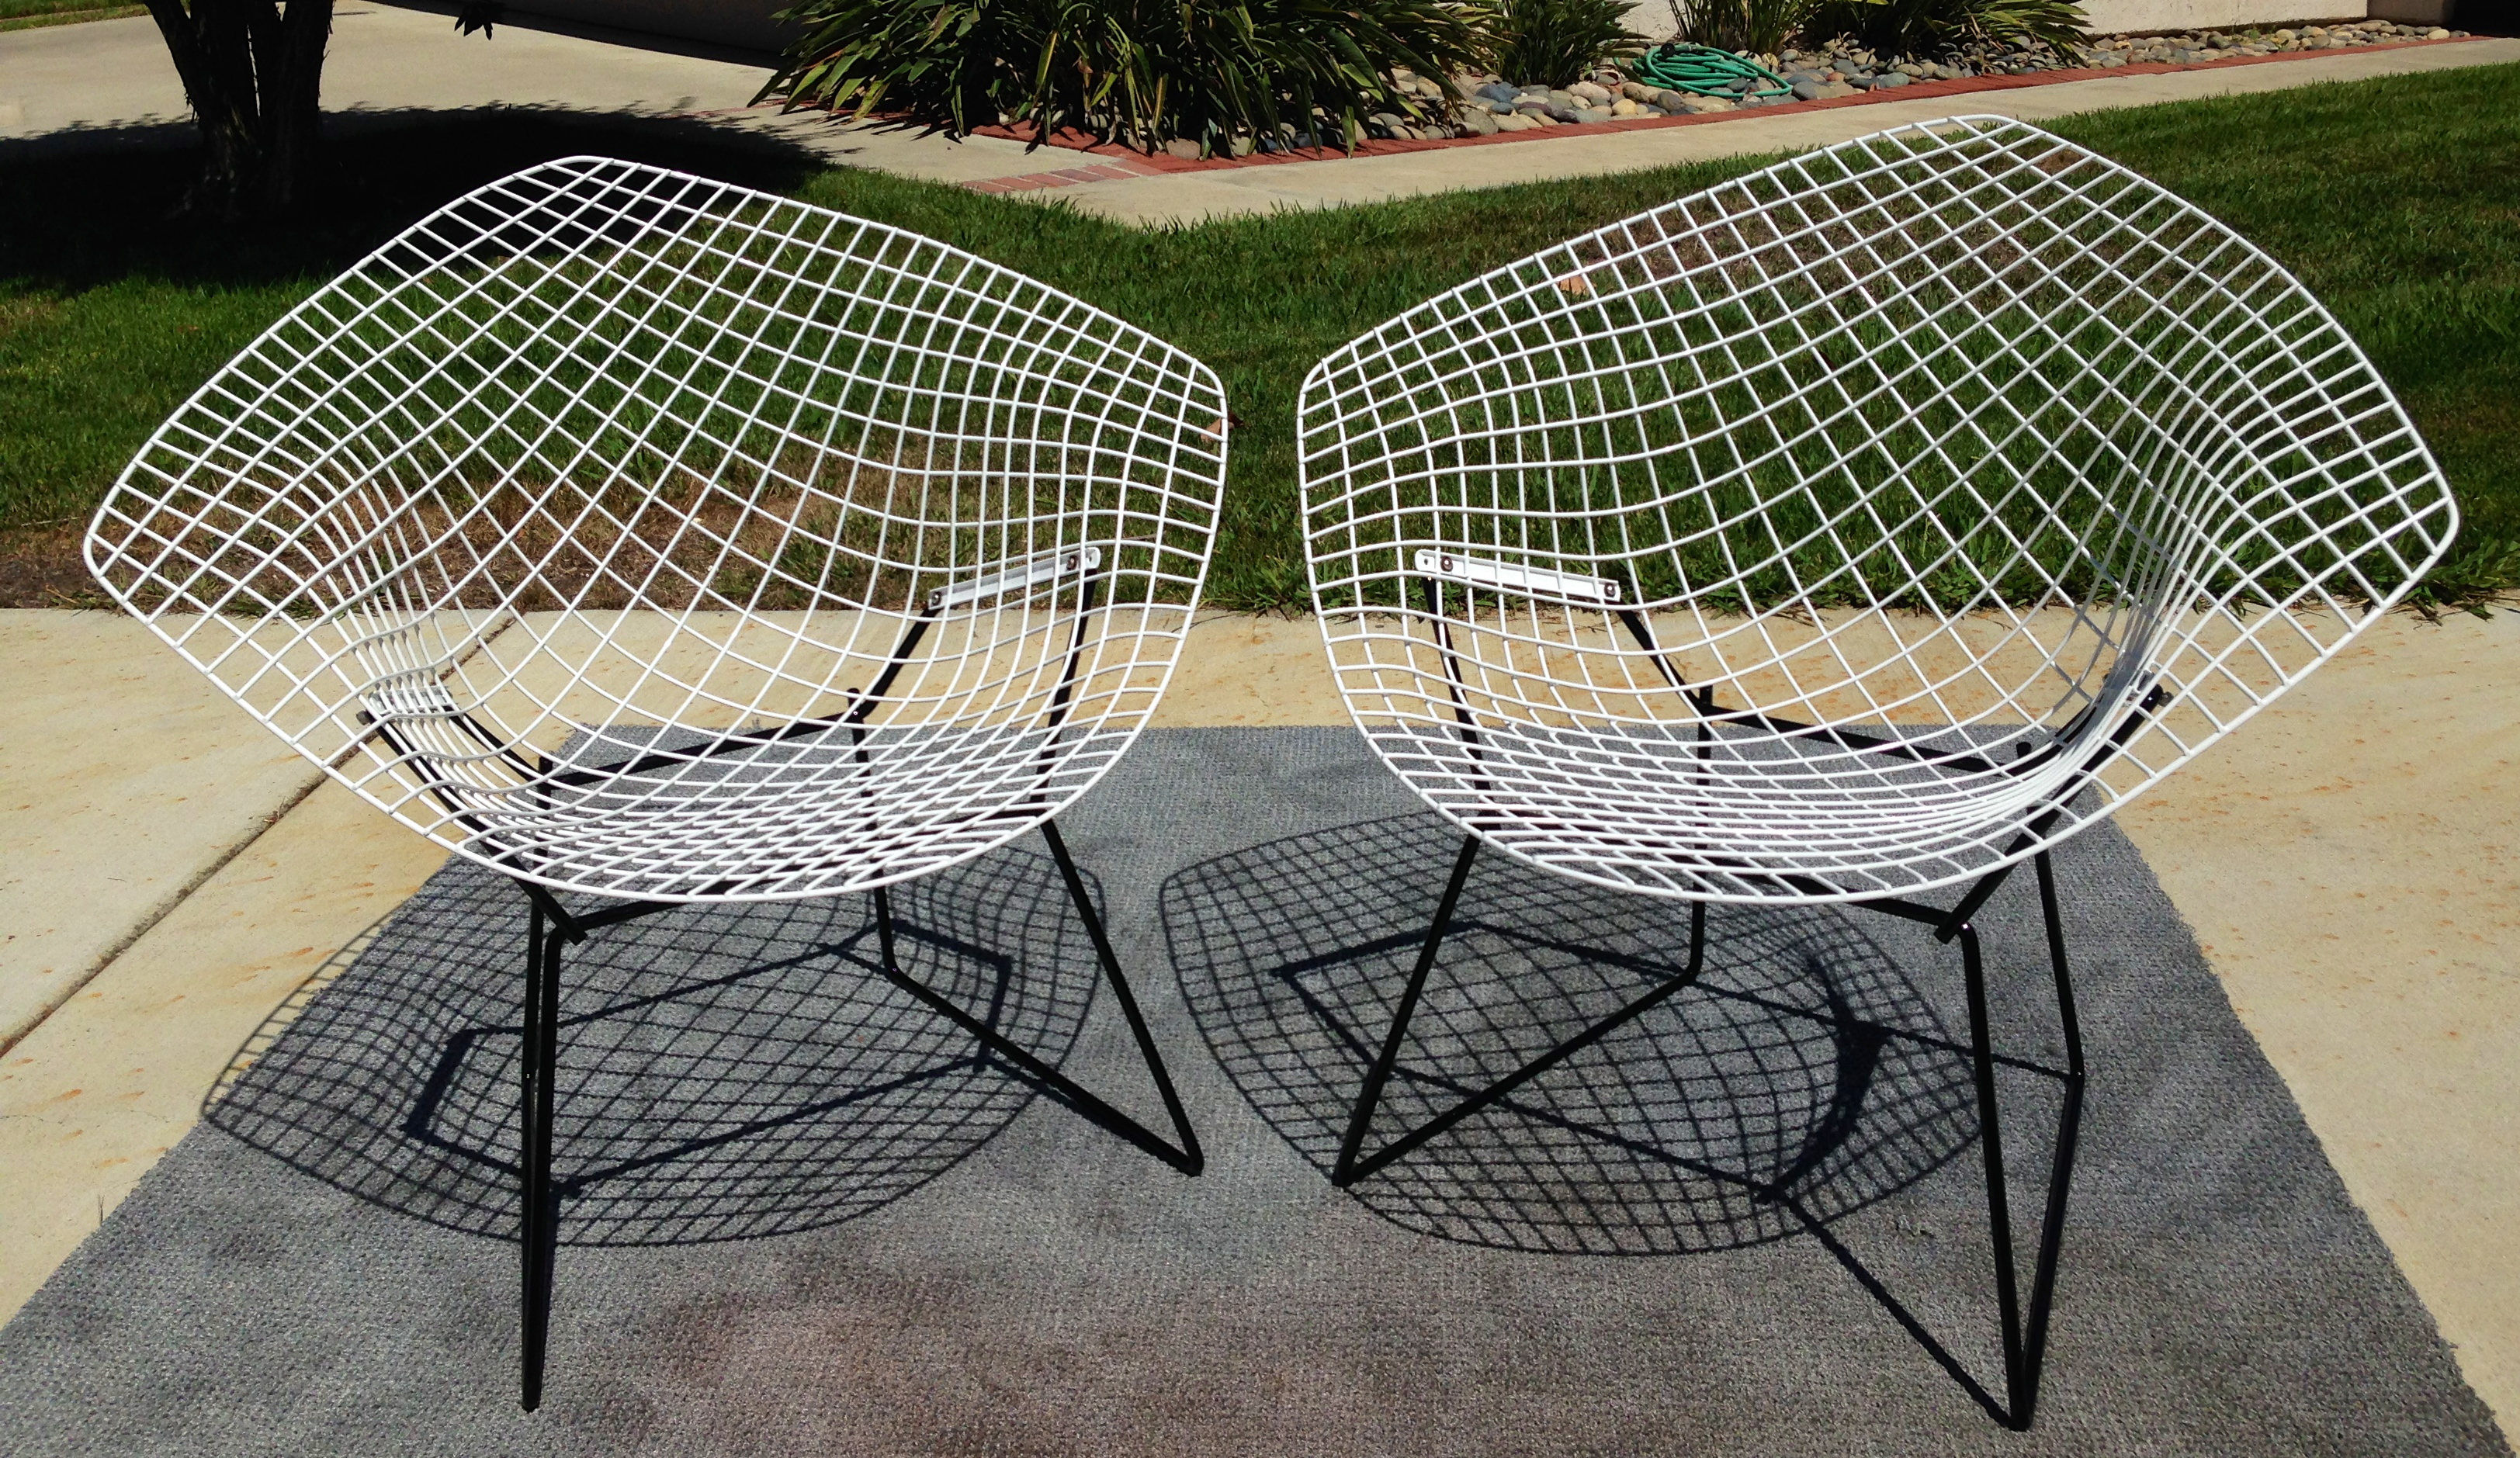 Bertoia diamond chair vintage - Set Of 2 Vintage Diamond Chairs Totally Restored Welding Sand Blasting Powder Coating Are Some Of The Steps The Chairs Went Through In Gloss B W With